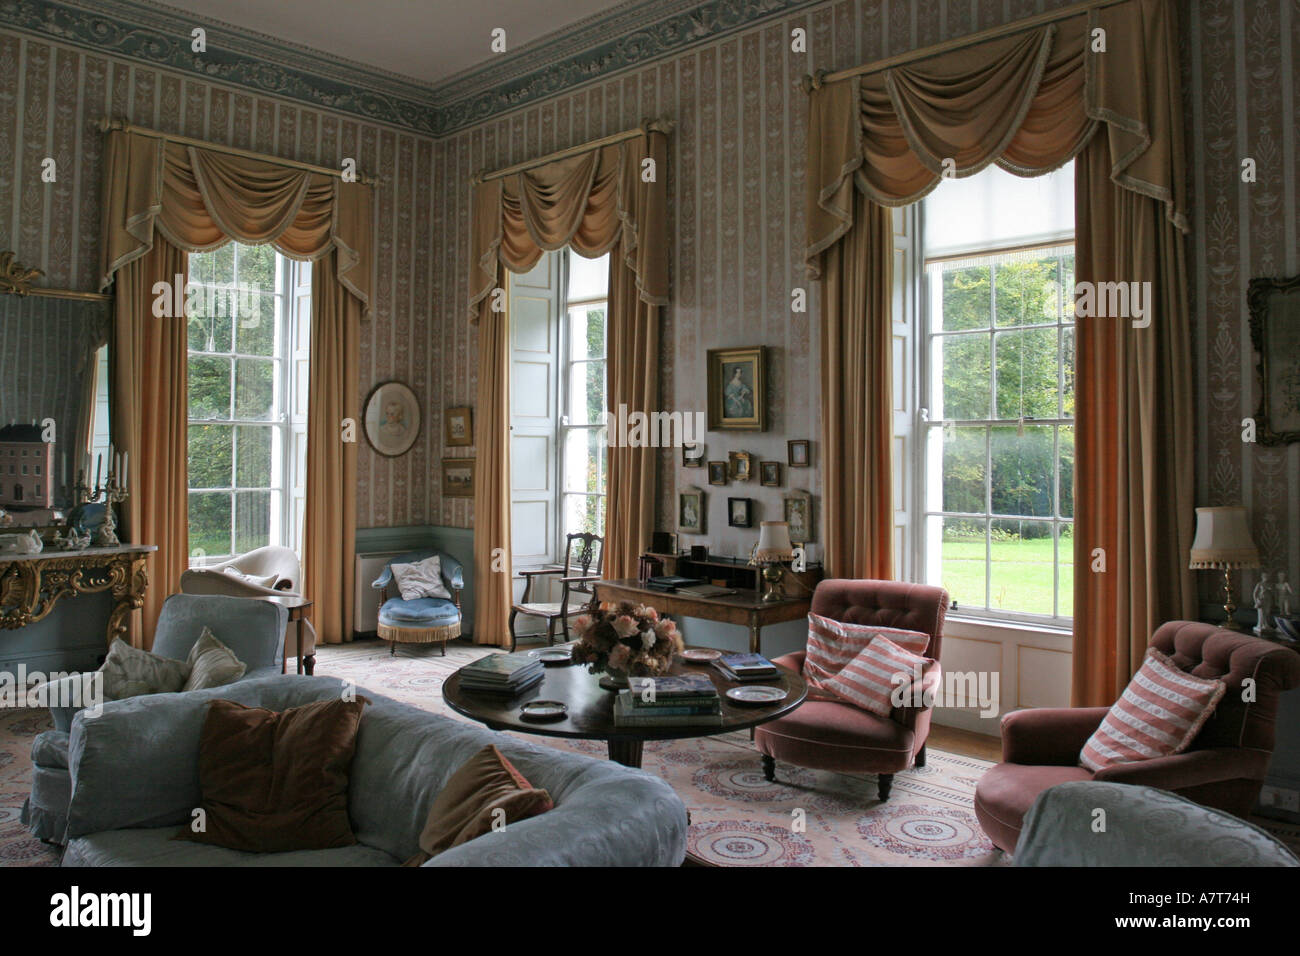 Interiors Of Room Ashford Castle Ireland Stock Photo